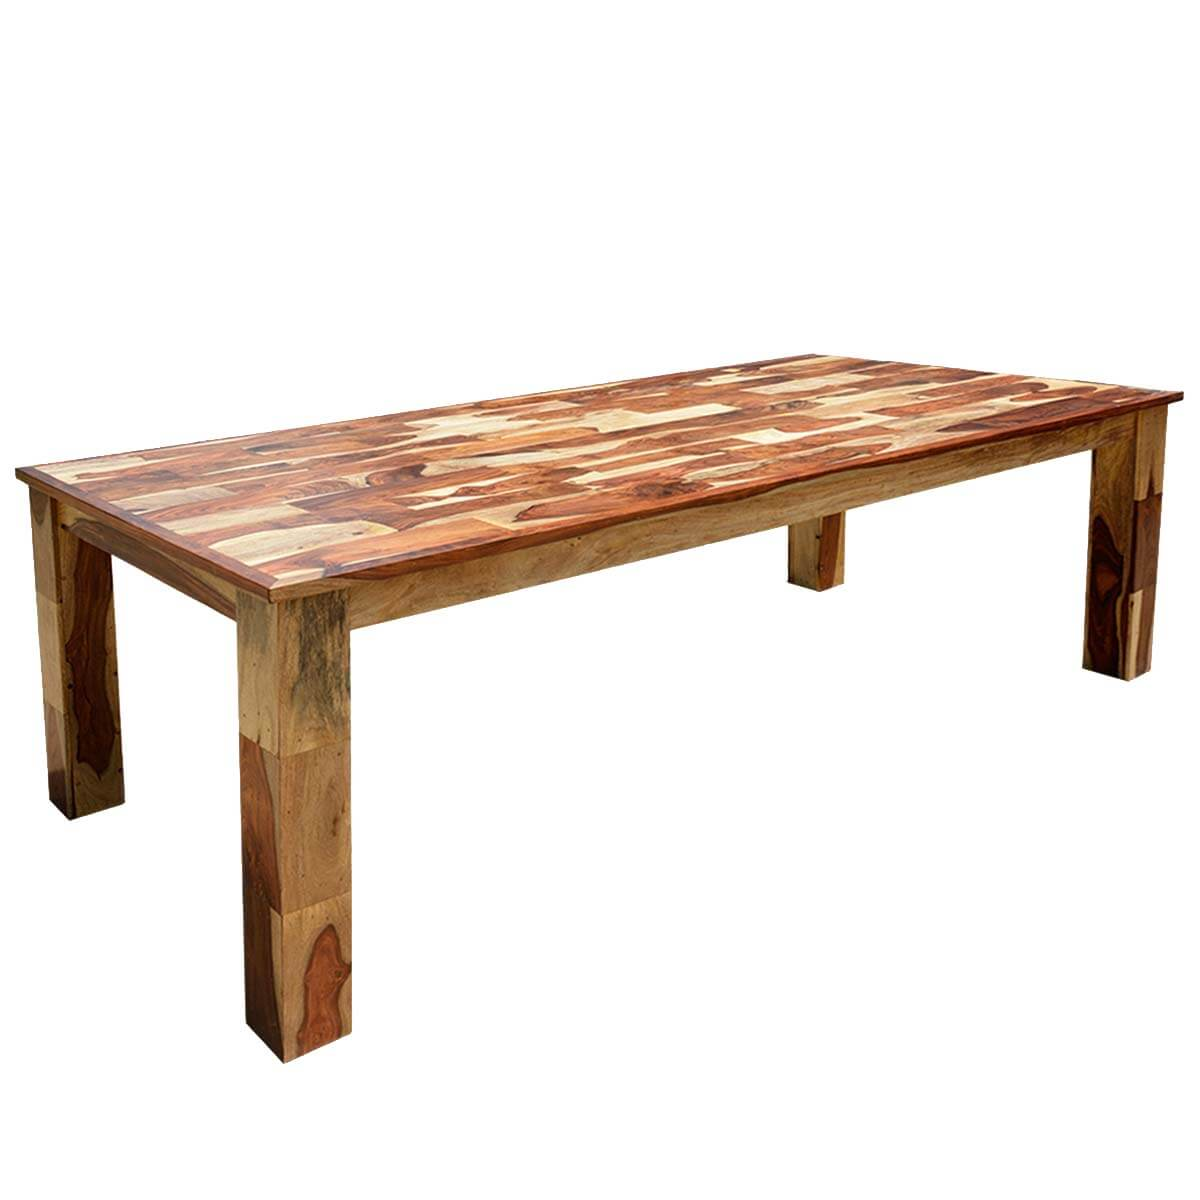 Cariboo rustic solid wood large rectangular dining table for Contemporary rectangular dining table